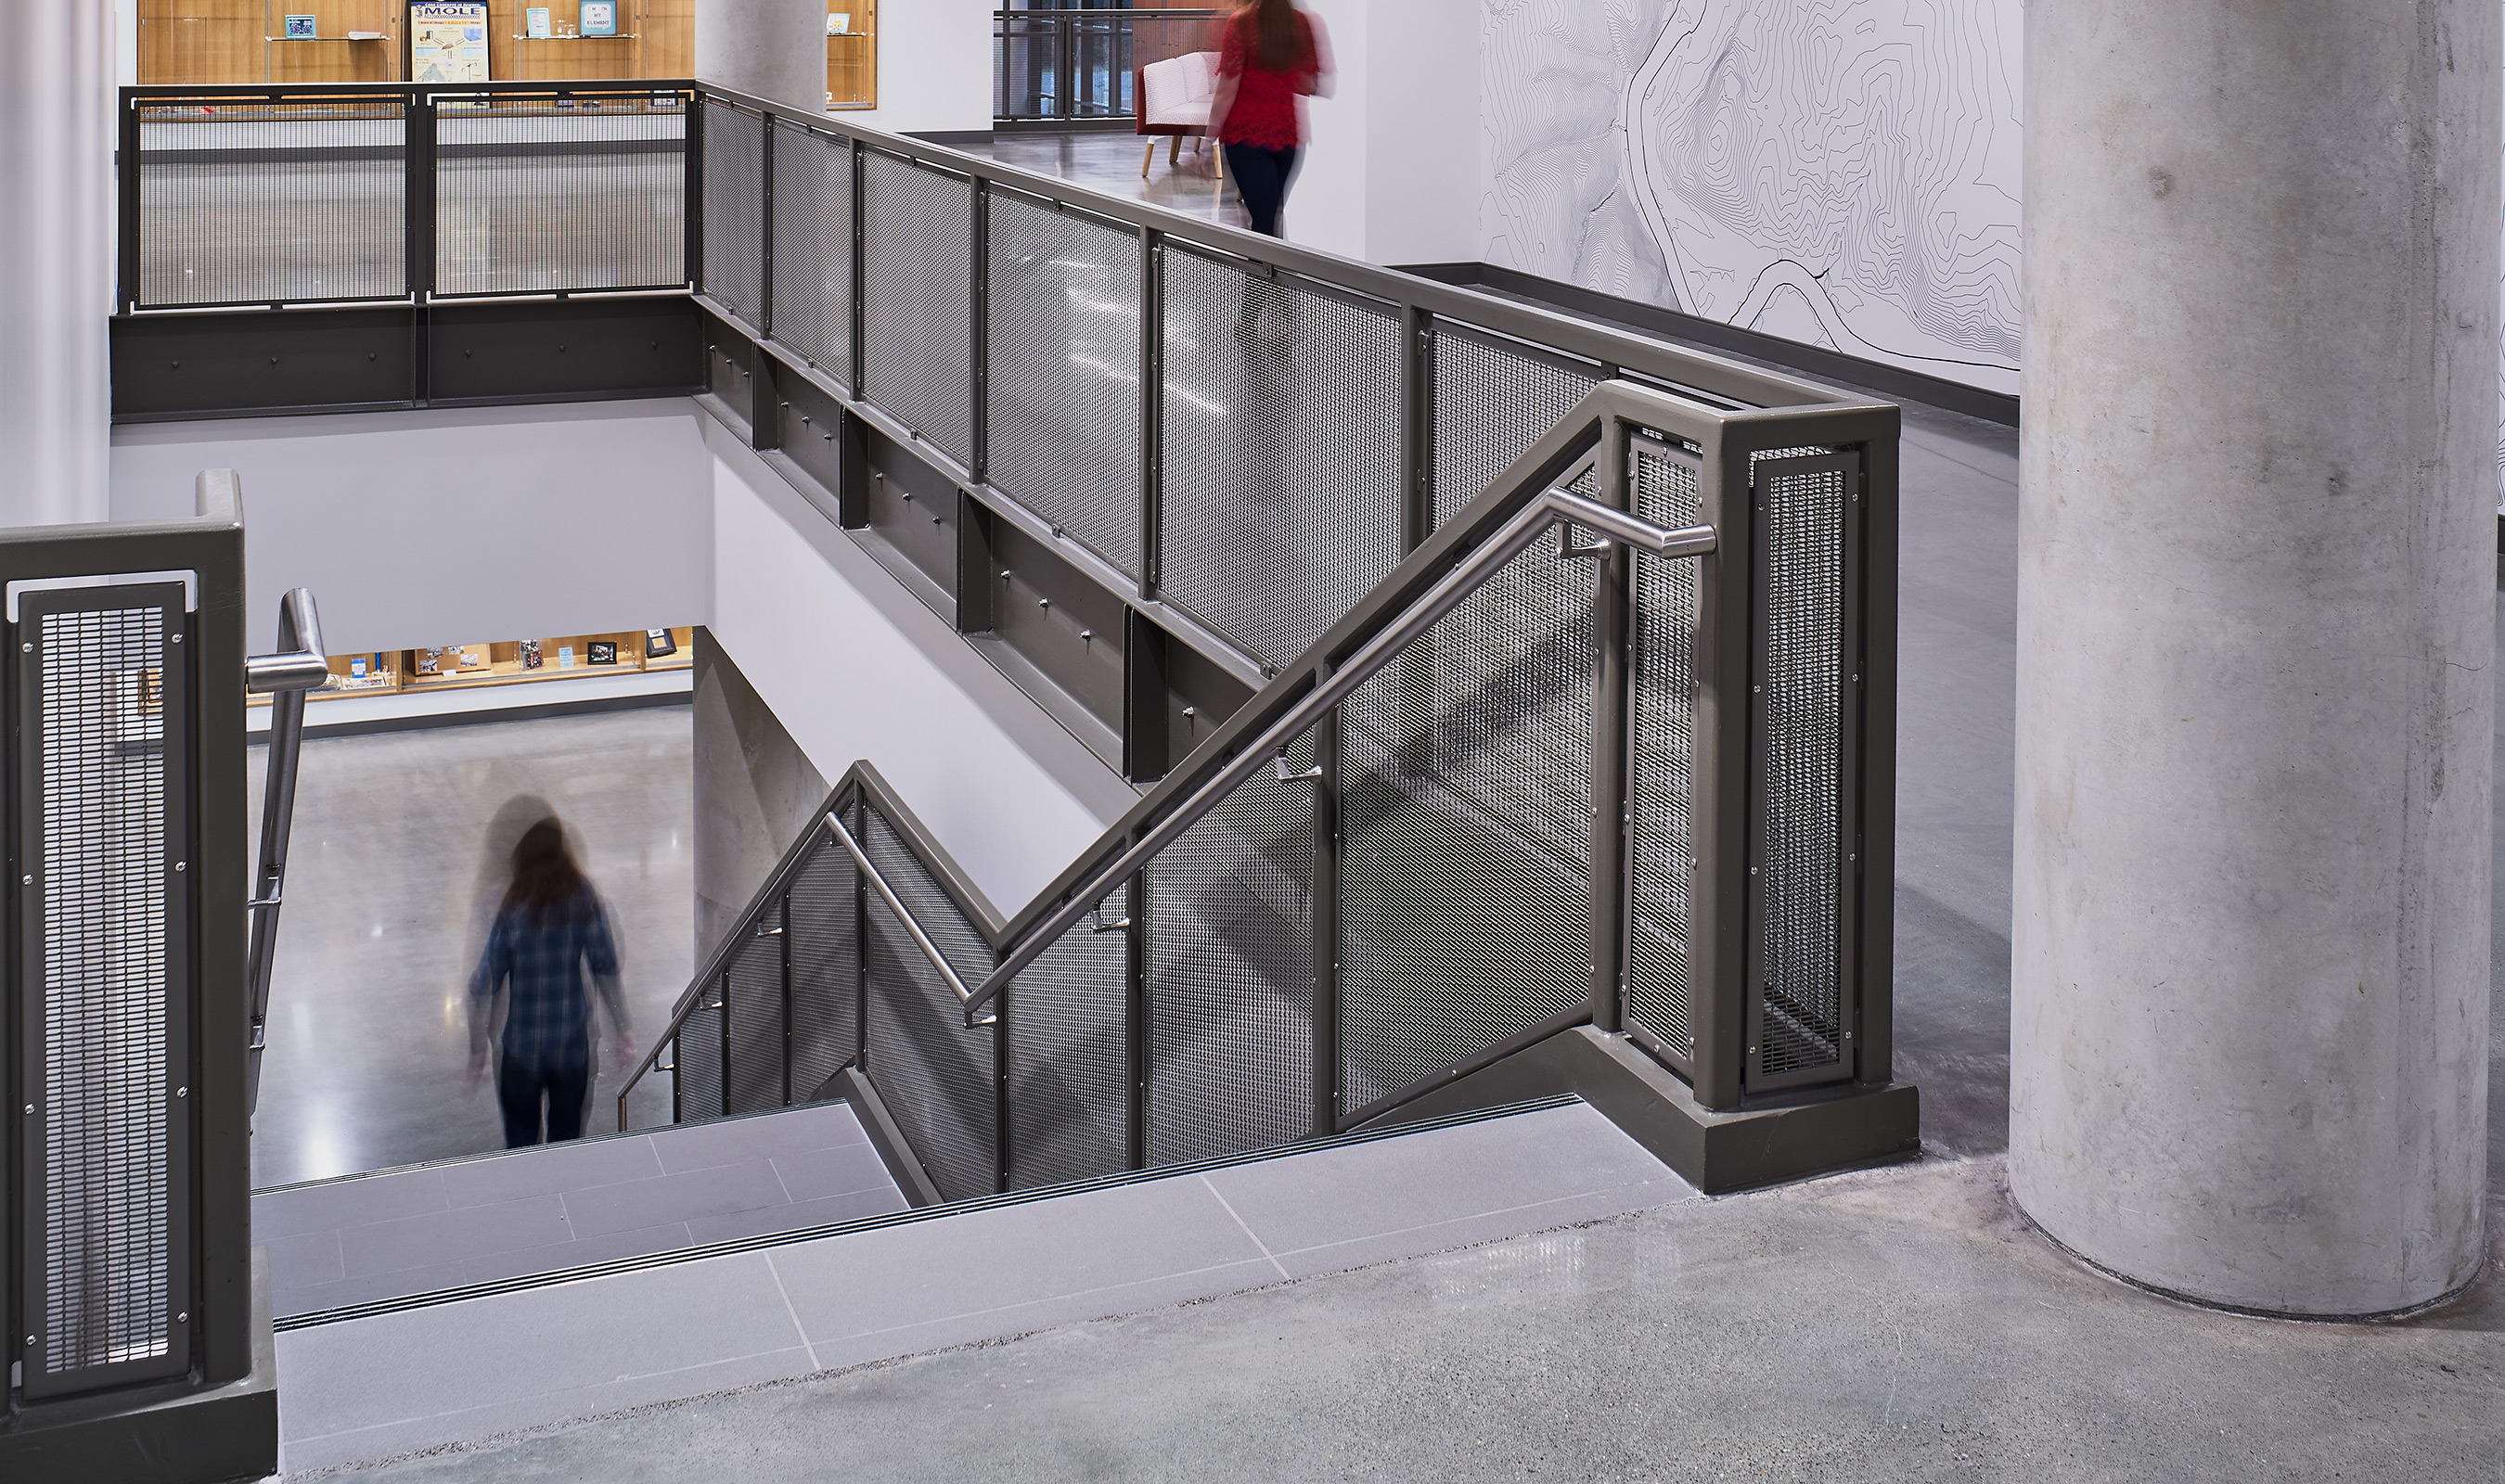 Banker Wire's woven wire mesh is featured throughout many spaces in the academy.